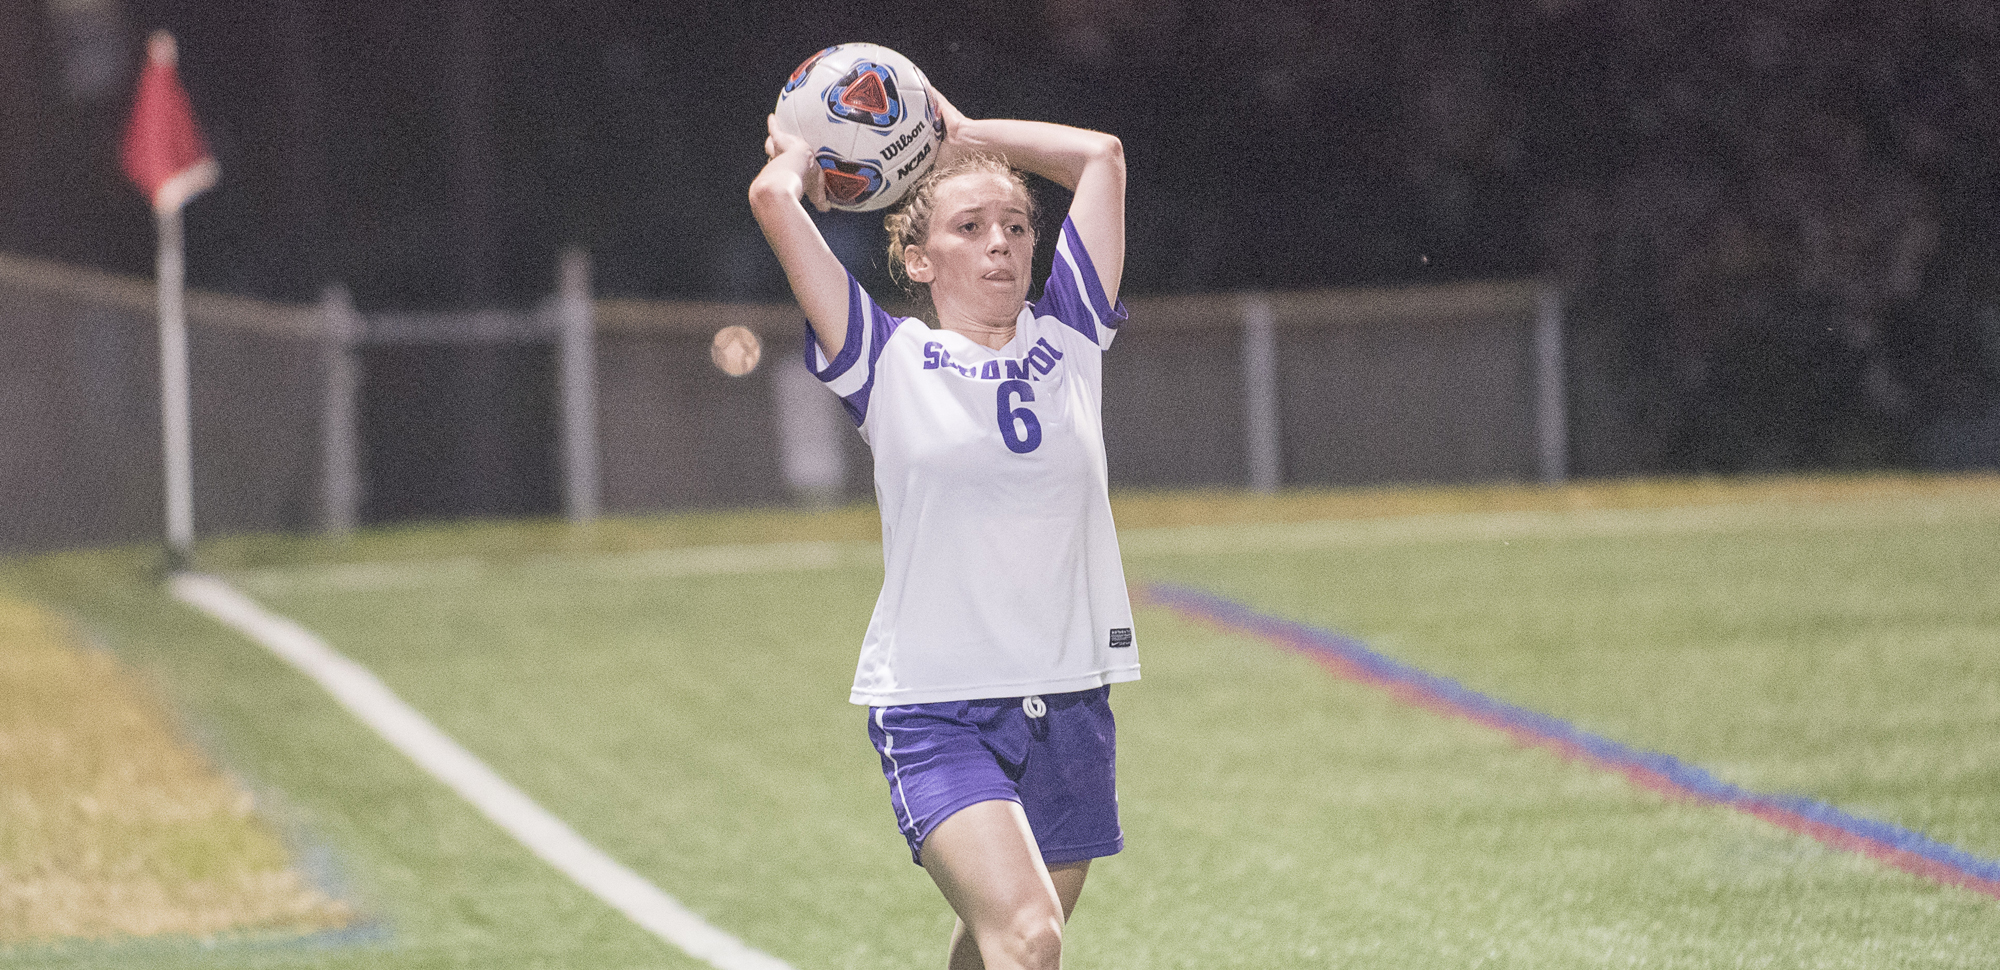 Senior Katie Cullen scored her first goal of the season in the Royals' 3-0 win over Haverford on Wednesday night.